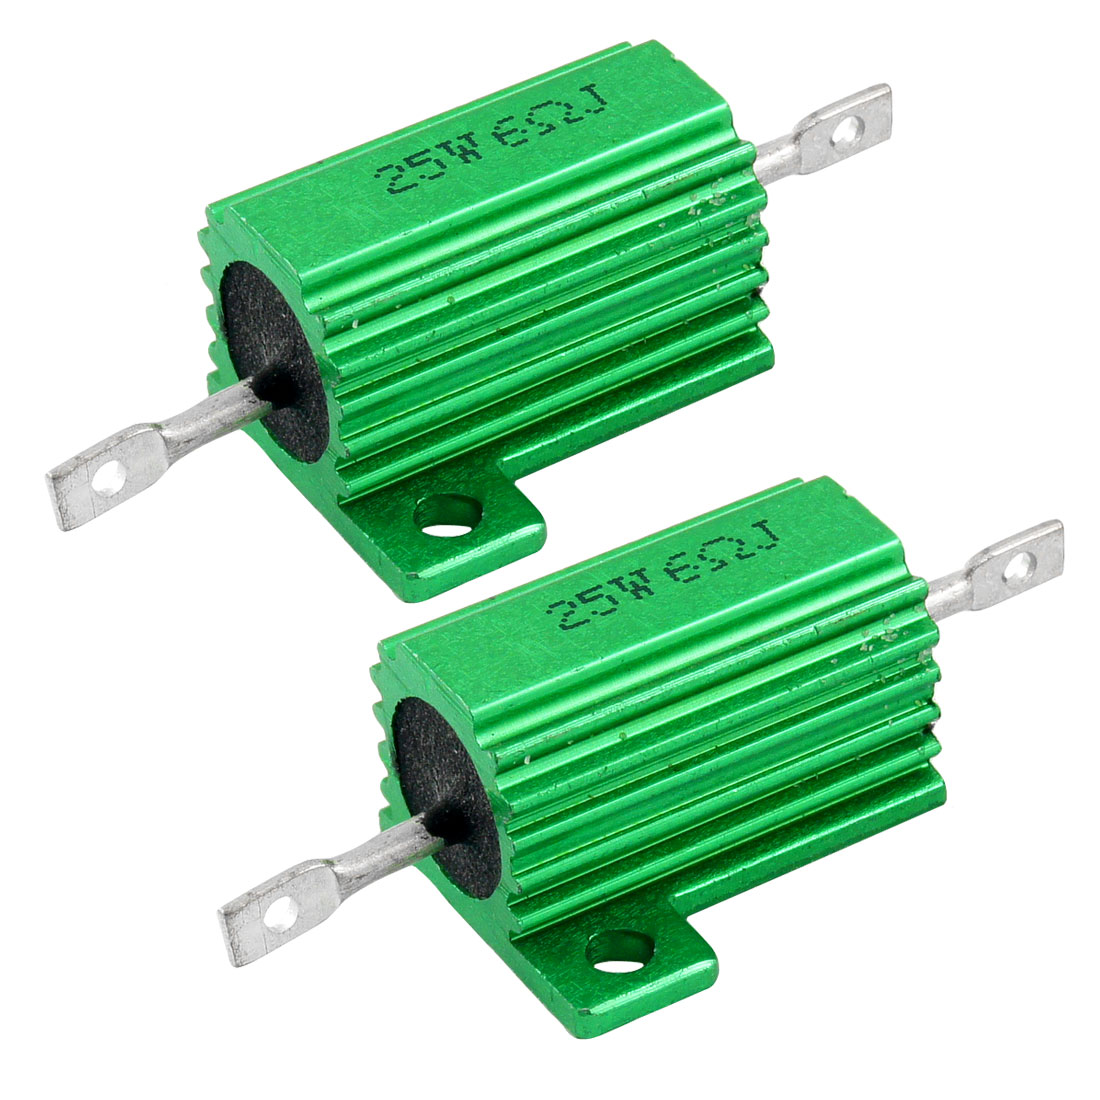 25W 6 Ohm Green Aluminum Housed Wirewound Resistors 2 Pcs